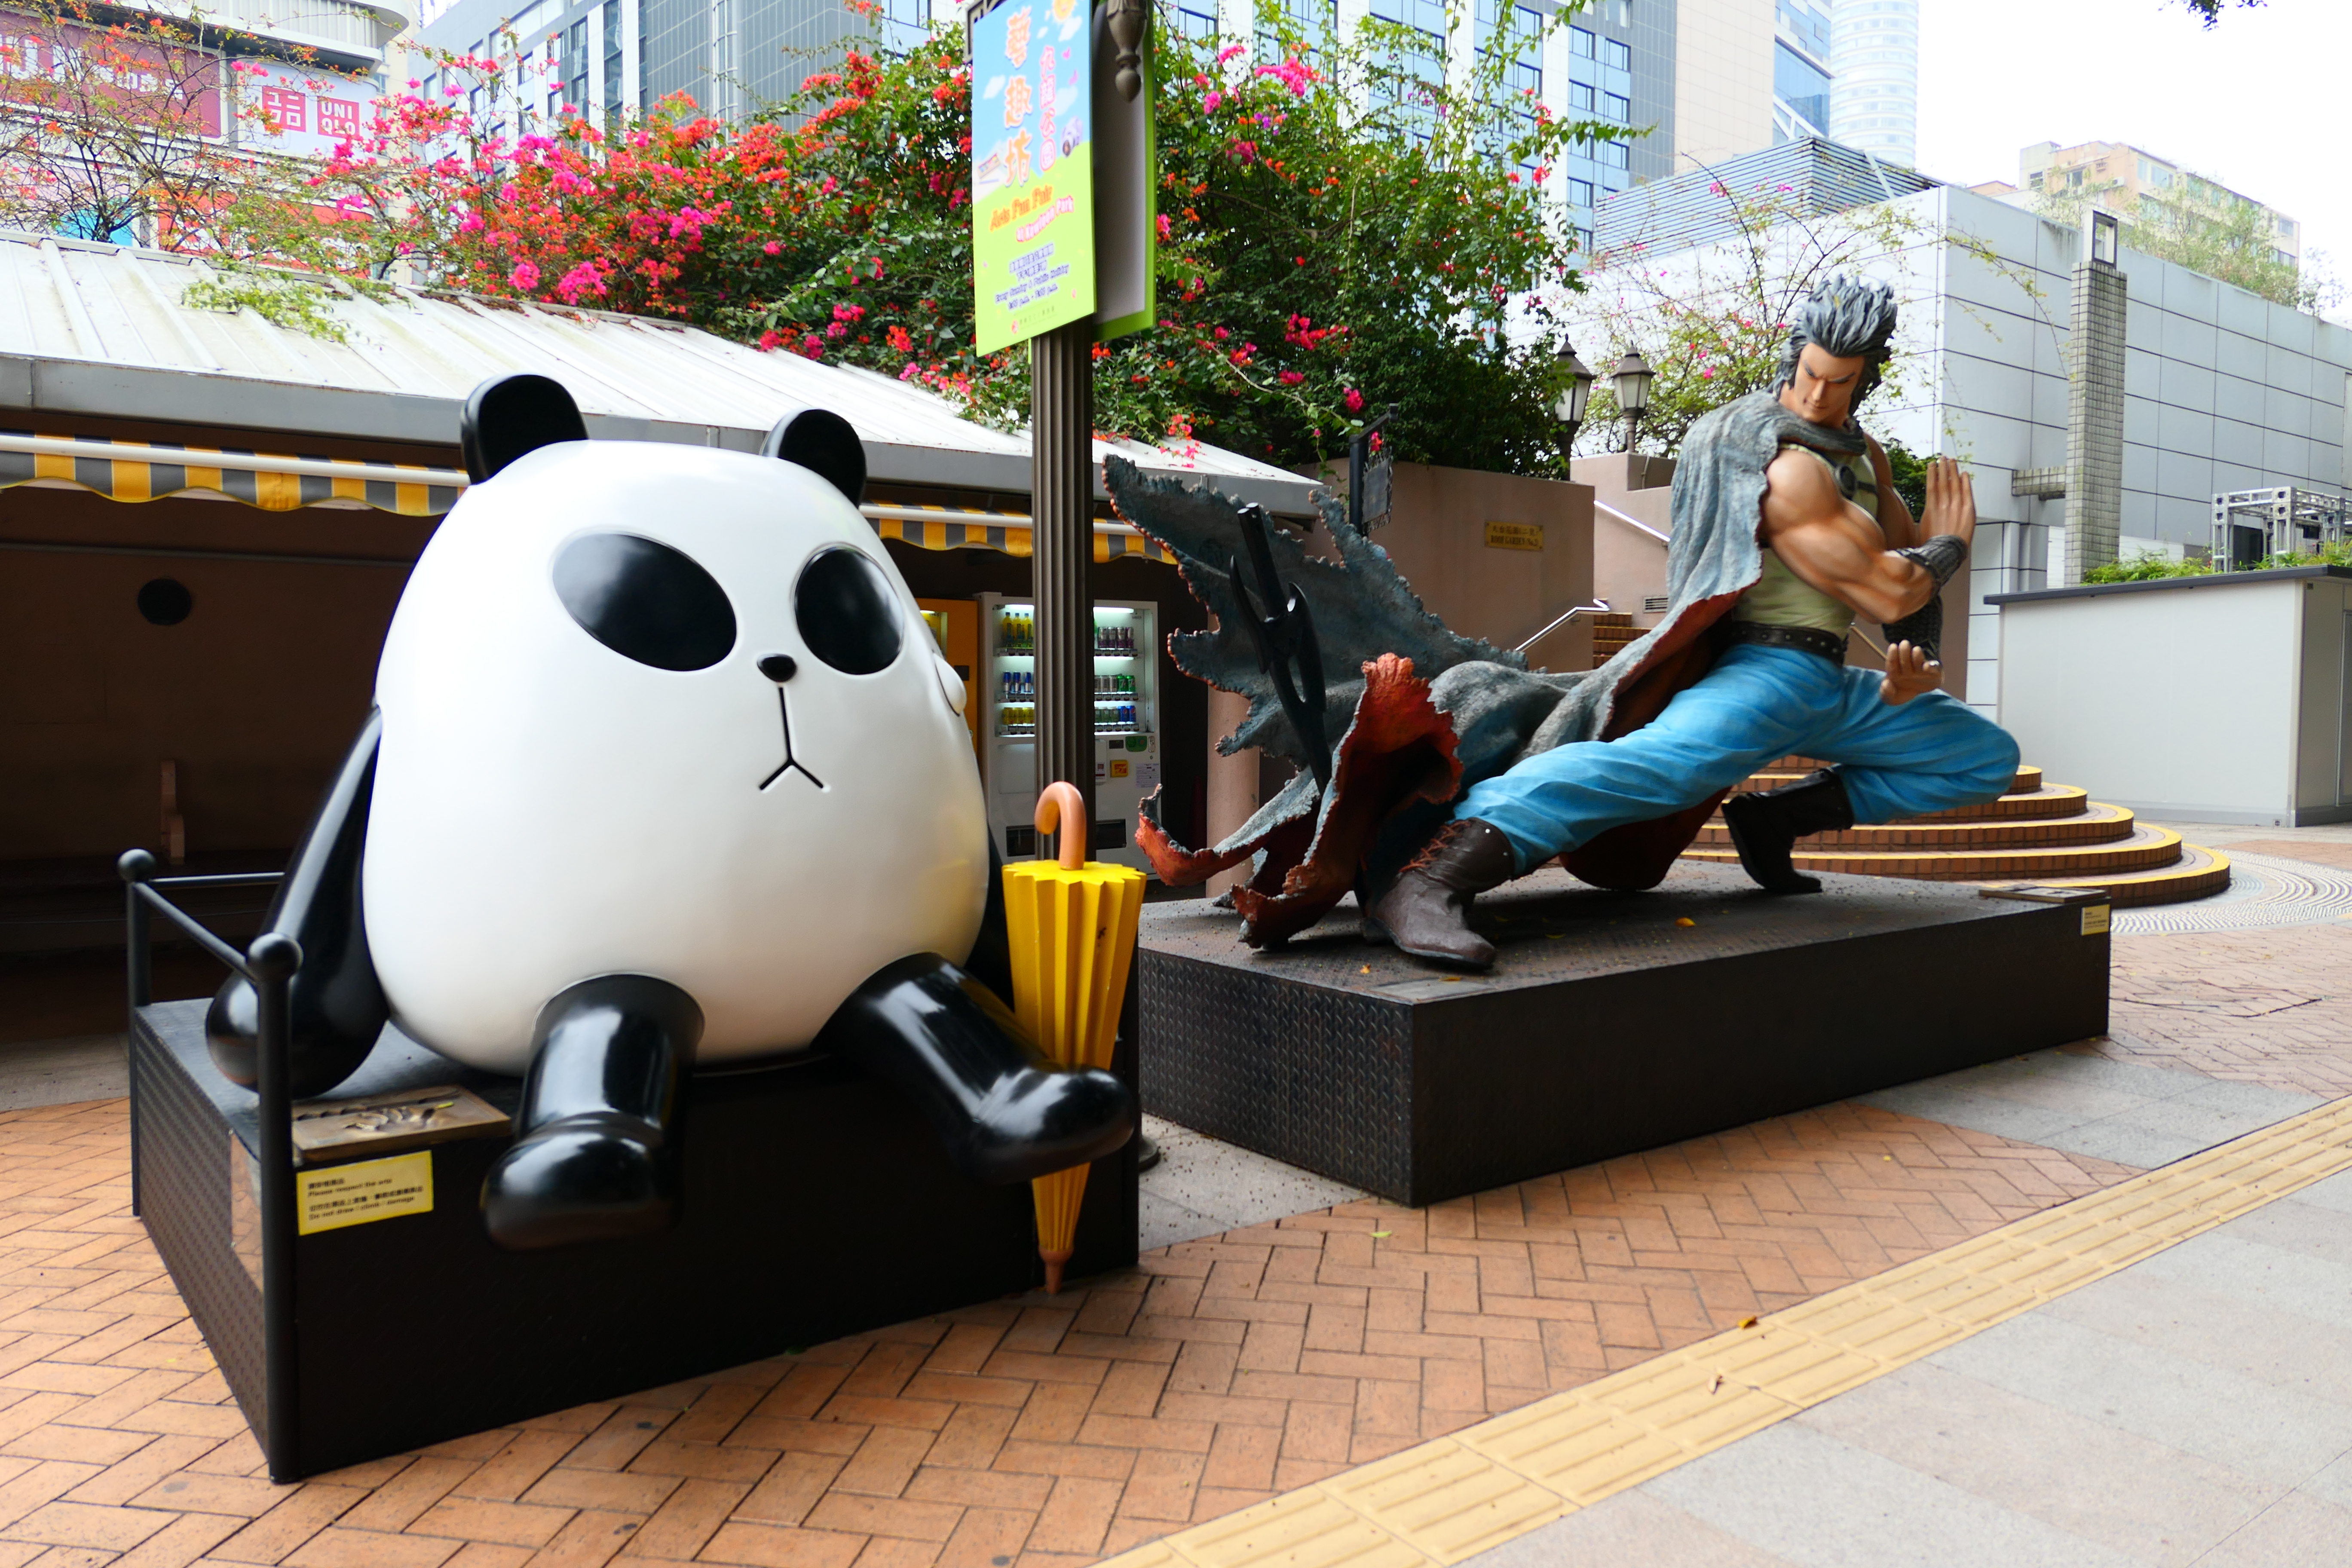 Kowloon Park - Hong Kong Avenue of Comic Stars